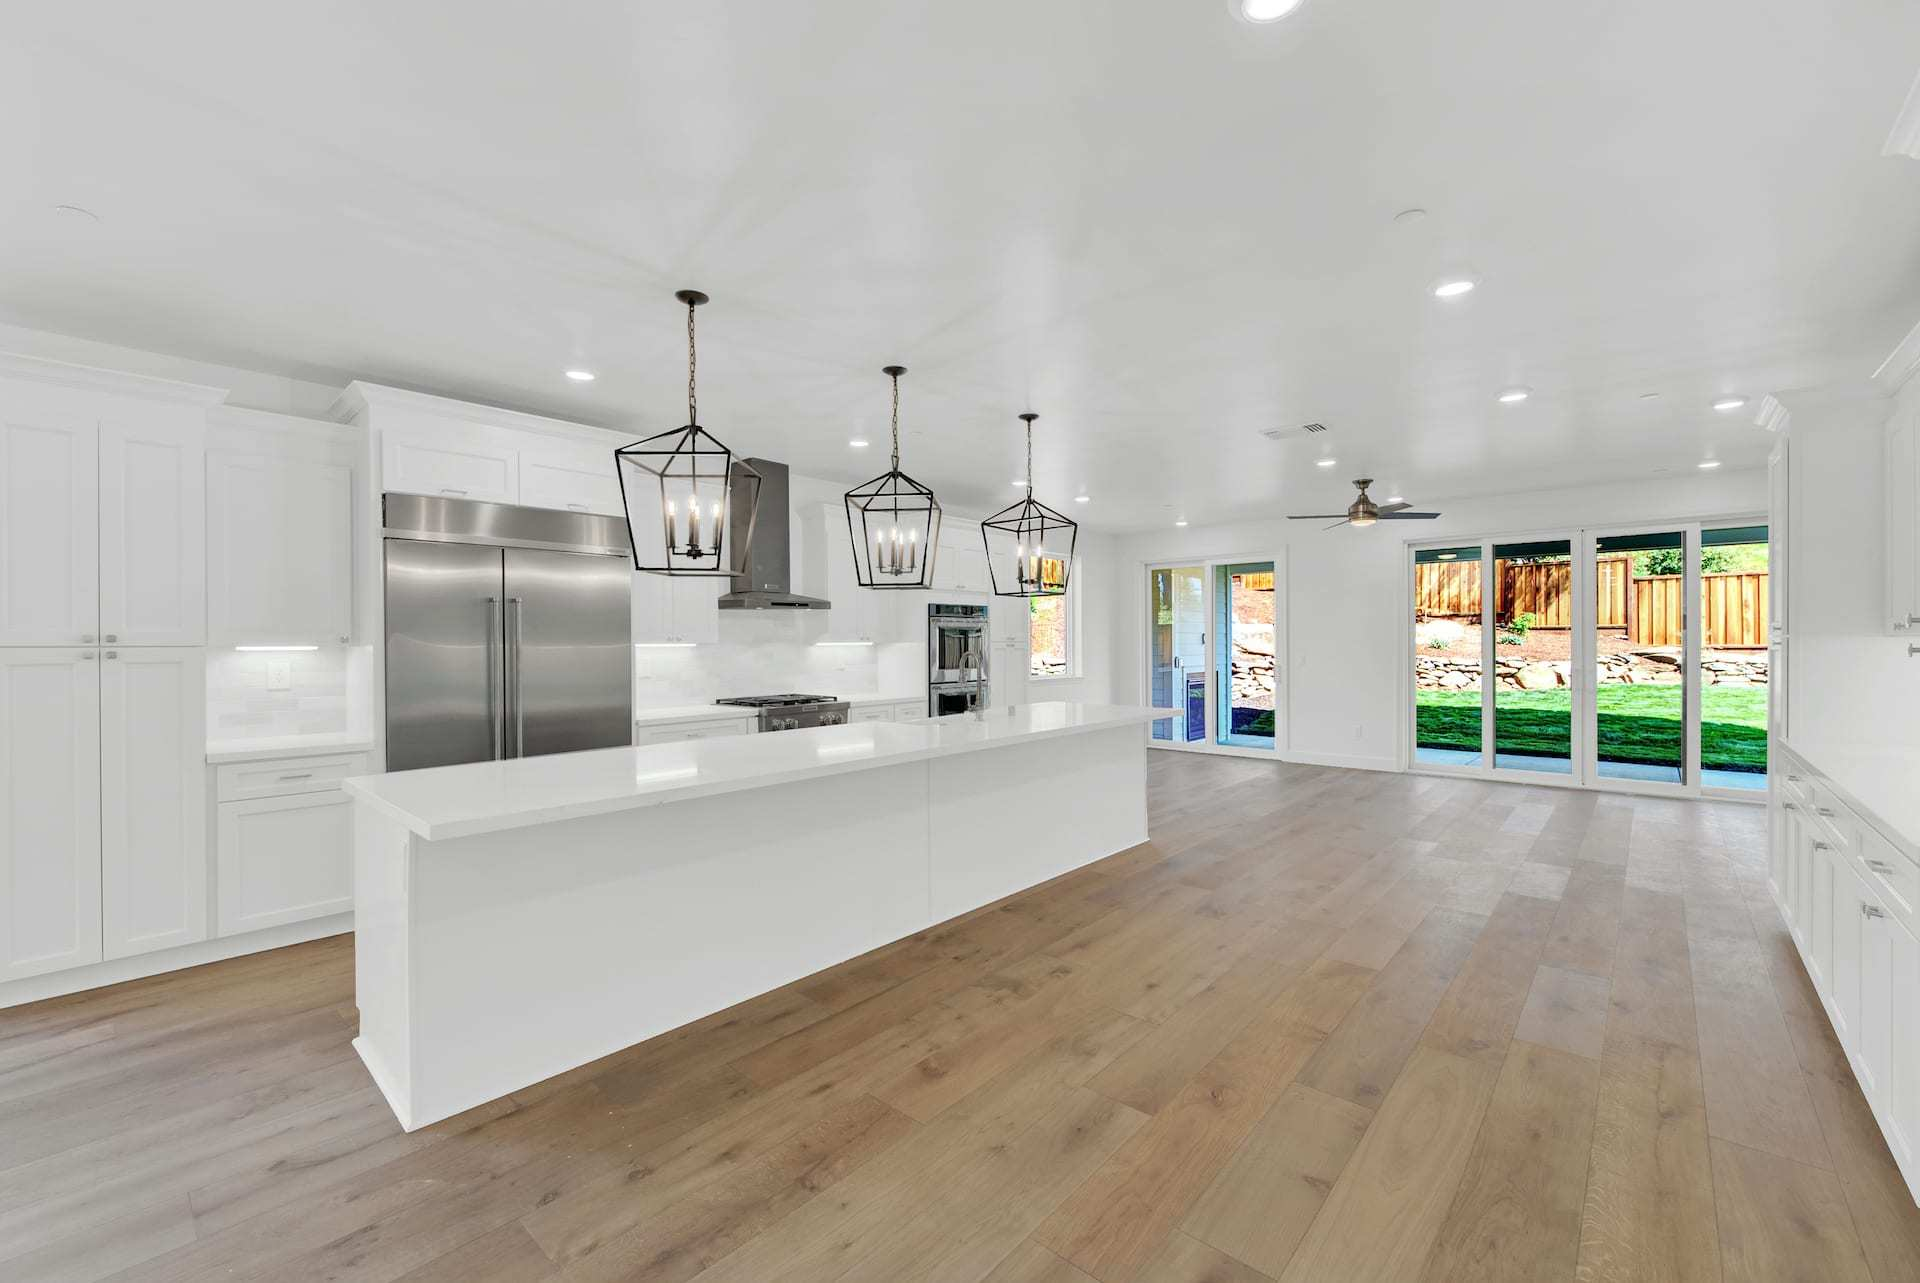 Kitchen featured in the 4970 Lakepointe Circle By Silvermark Luxury Homes in Santa Rosa, CA